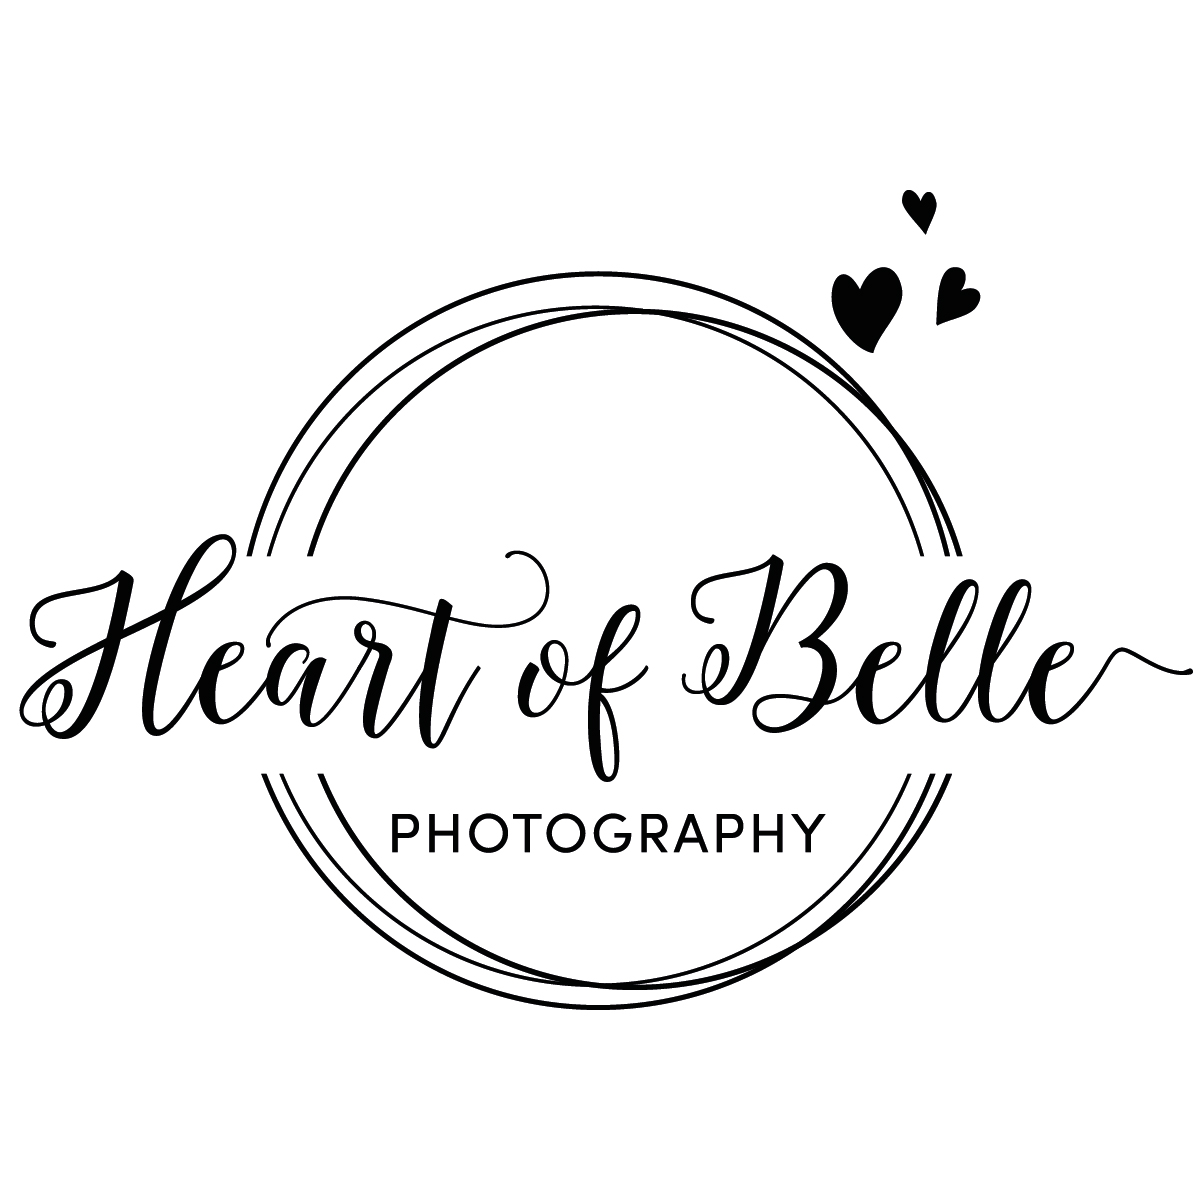 Heart of Belle Photography - Houston, Katy, Sugar Land, The Woodlands TX Photographer